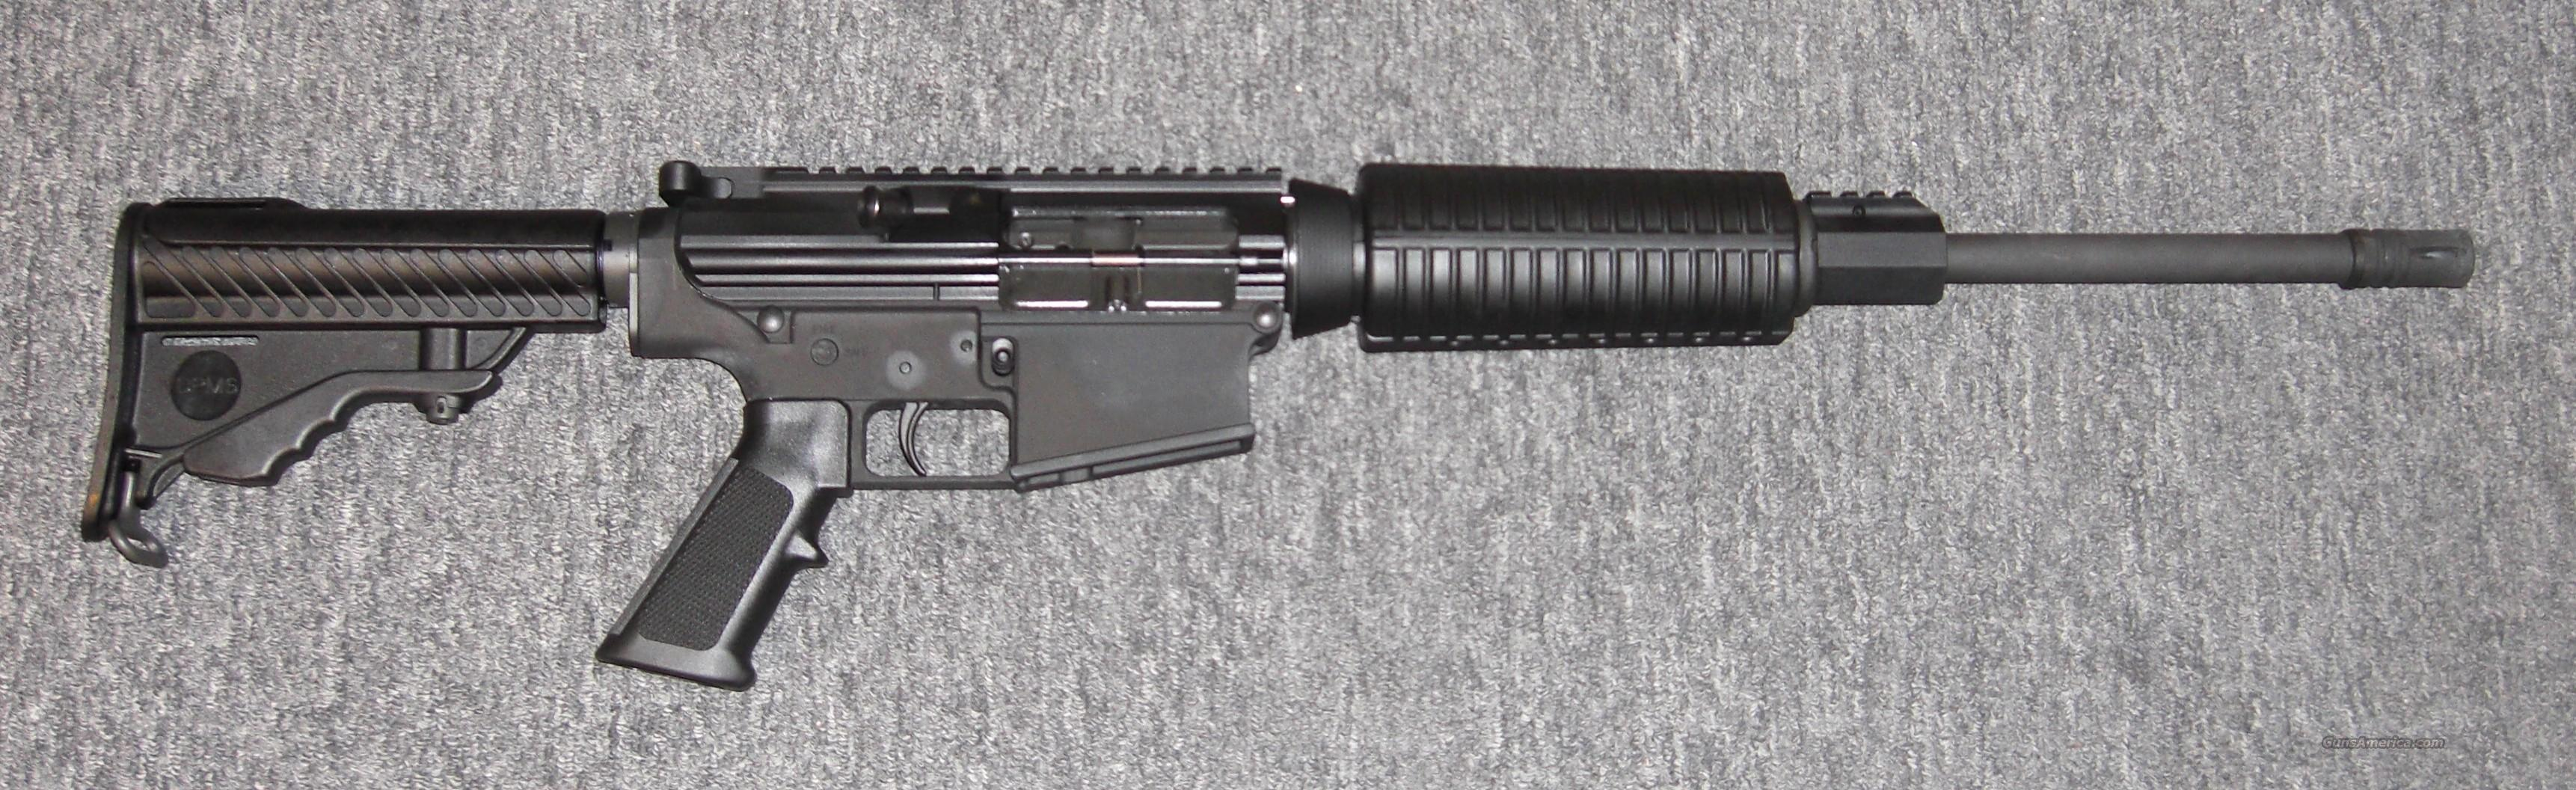 LR-308  (Oracle)  Guns > Rifles > DPMS - Panther Arms > Complete Rifle